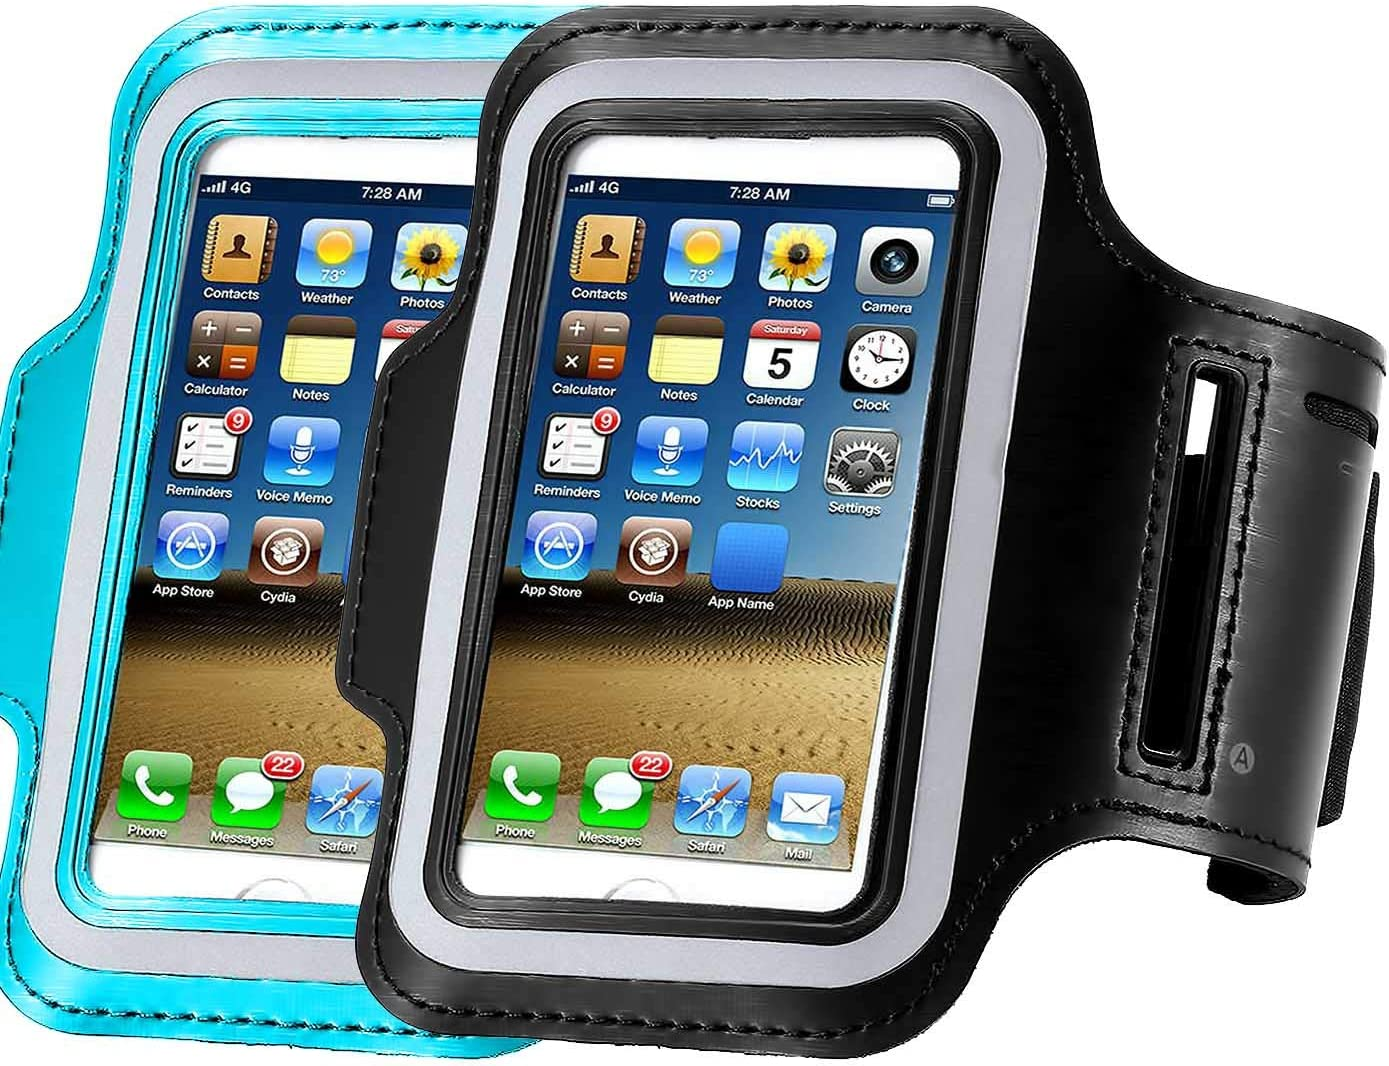 [2Pack] Water Resistant Cell Phone Armband: CaseHQ 5.2 Inch Case for iPhone X,8,7,6,6S,SE,5,5C,5S,Galaxy S5, Google Pixel- Adjustable Reflective Running Workout Gym Band,Key Holder-Black+Blue